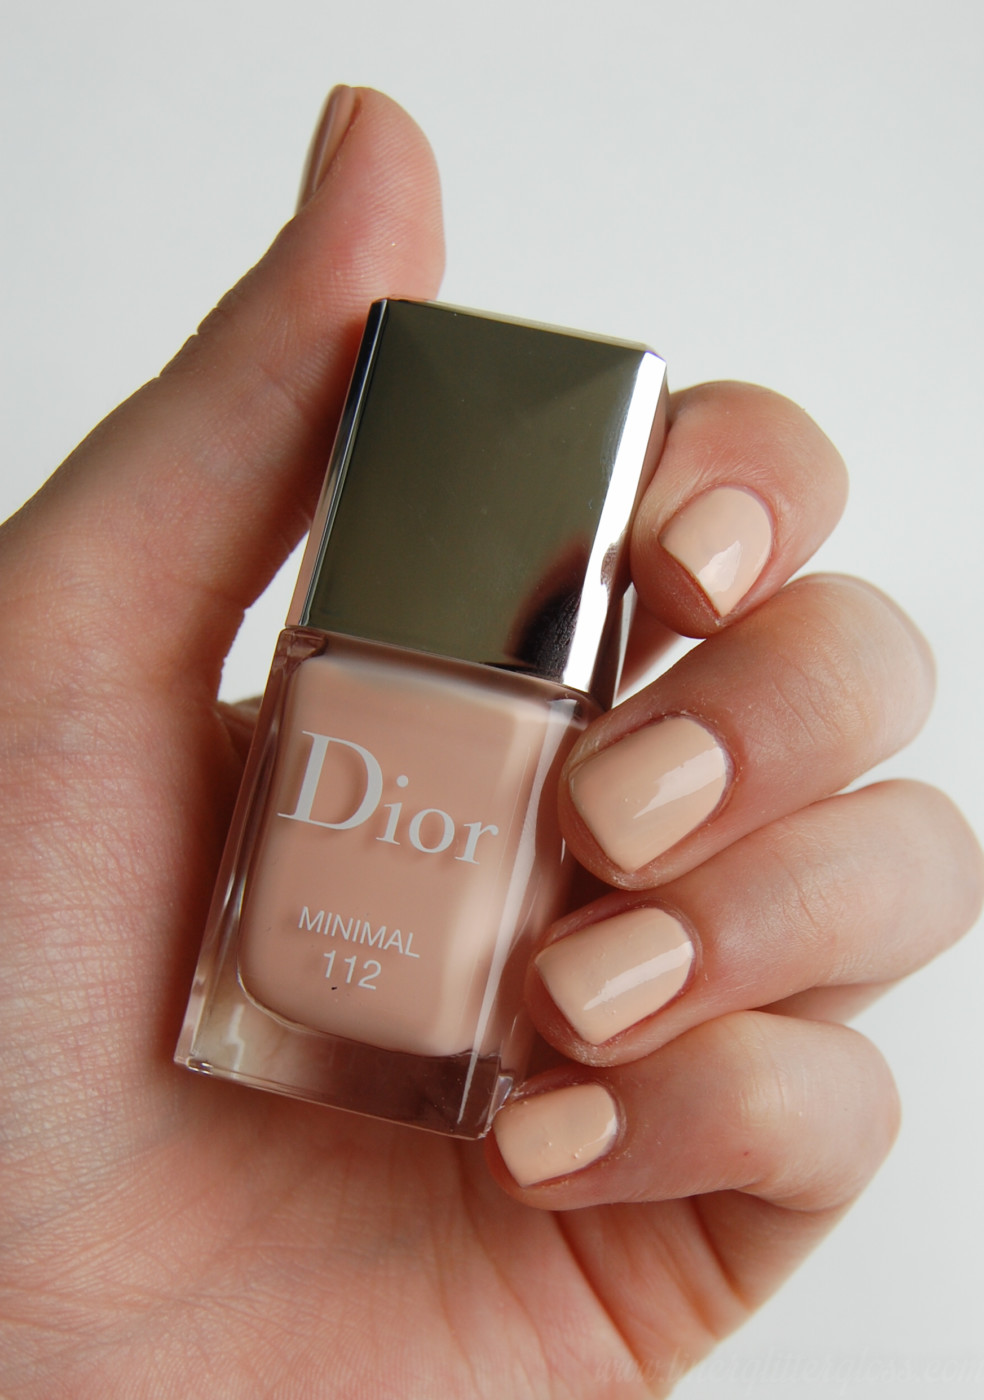 dior fall 2016, dior fall 2016 review, dior fall 2016 swatches, dior skyline collection, dior skyline swatches, skyline photos, skyline swatches, luxury beauty 2016, fall 2016 beauty trends, fall 2016 beauty collection, what makeup to wear for fall, dior 5 couleurs skyline, dior capital of light, capital of light swatches, dior parisian sky, dior parisian sky swatches, dior lip pomade, diorblush light & contour, sculpting stick, contour stick, dior contour stick, dior color correction, colour correcting stick, face color correction, dior vernis minimal swatch